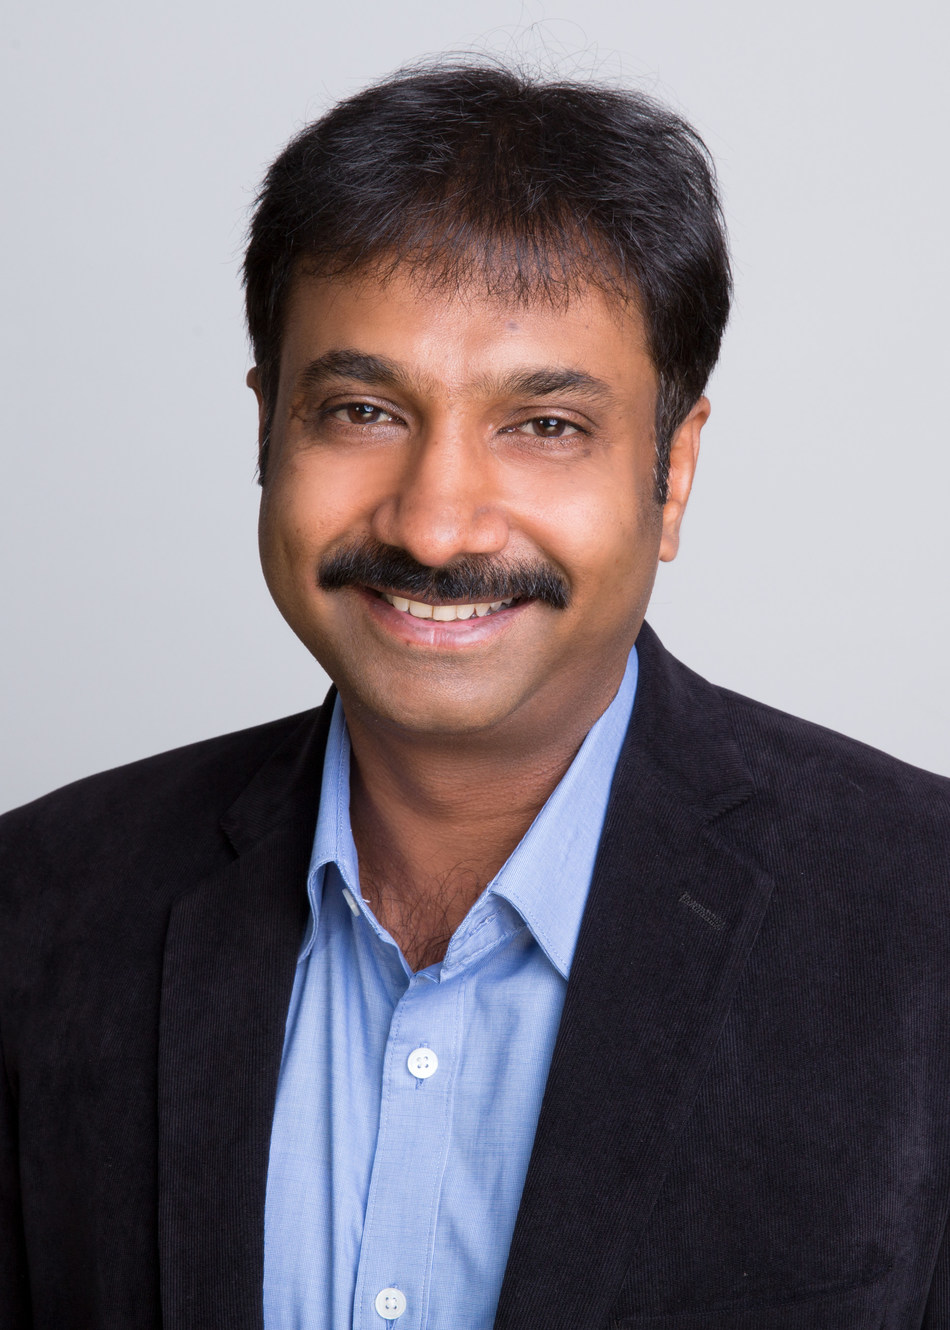 Manish Jain, General Manager, Reltio India